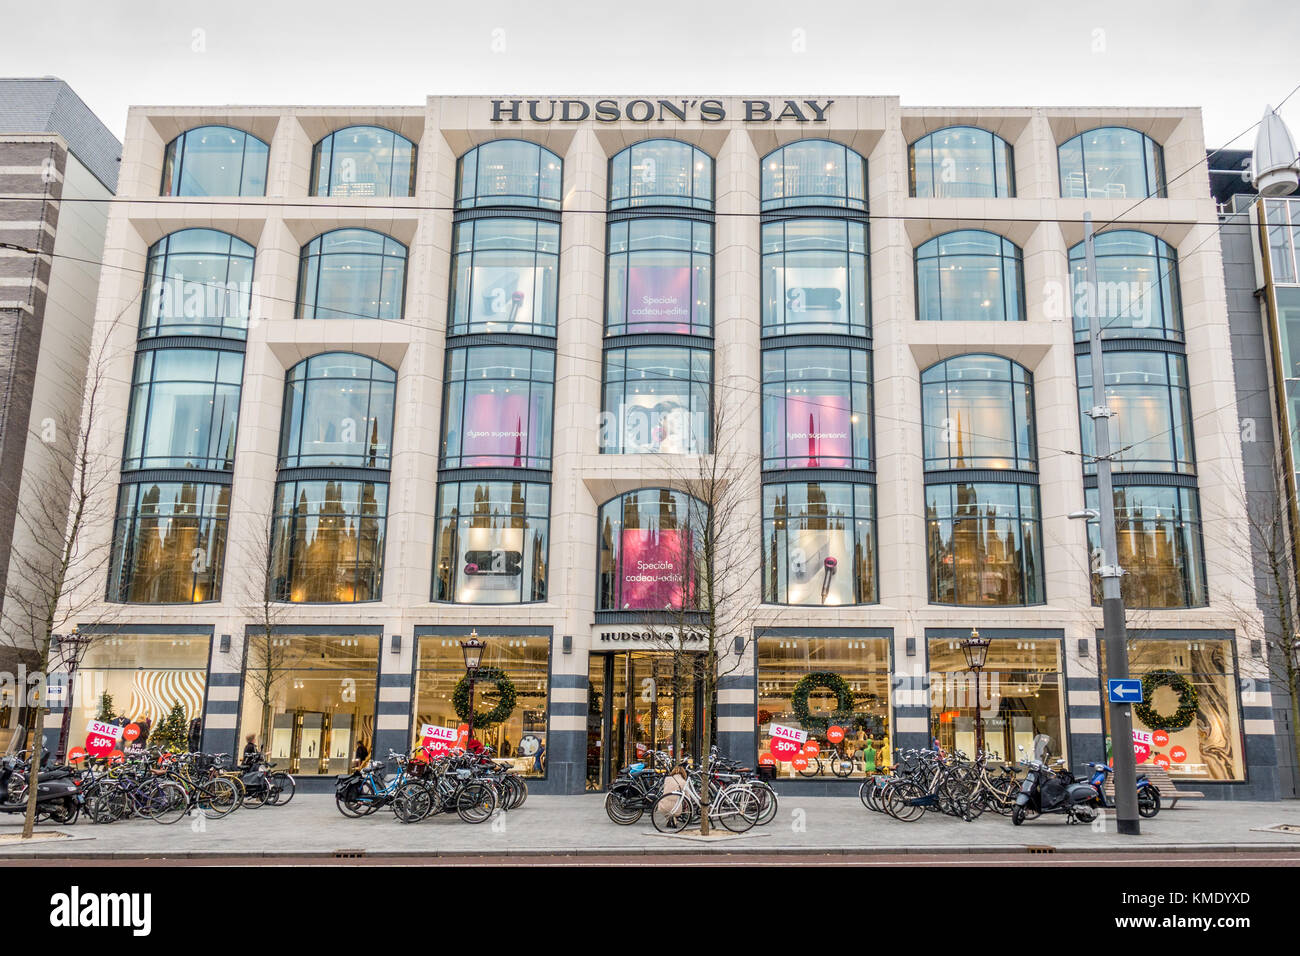 Exterior of department store Hudson's Bay on the Rokin in